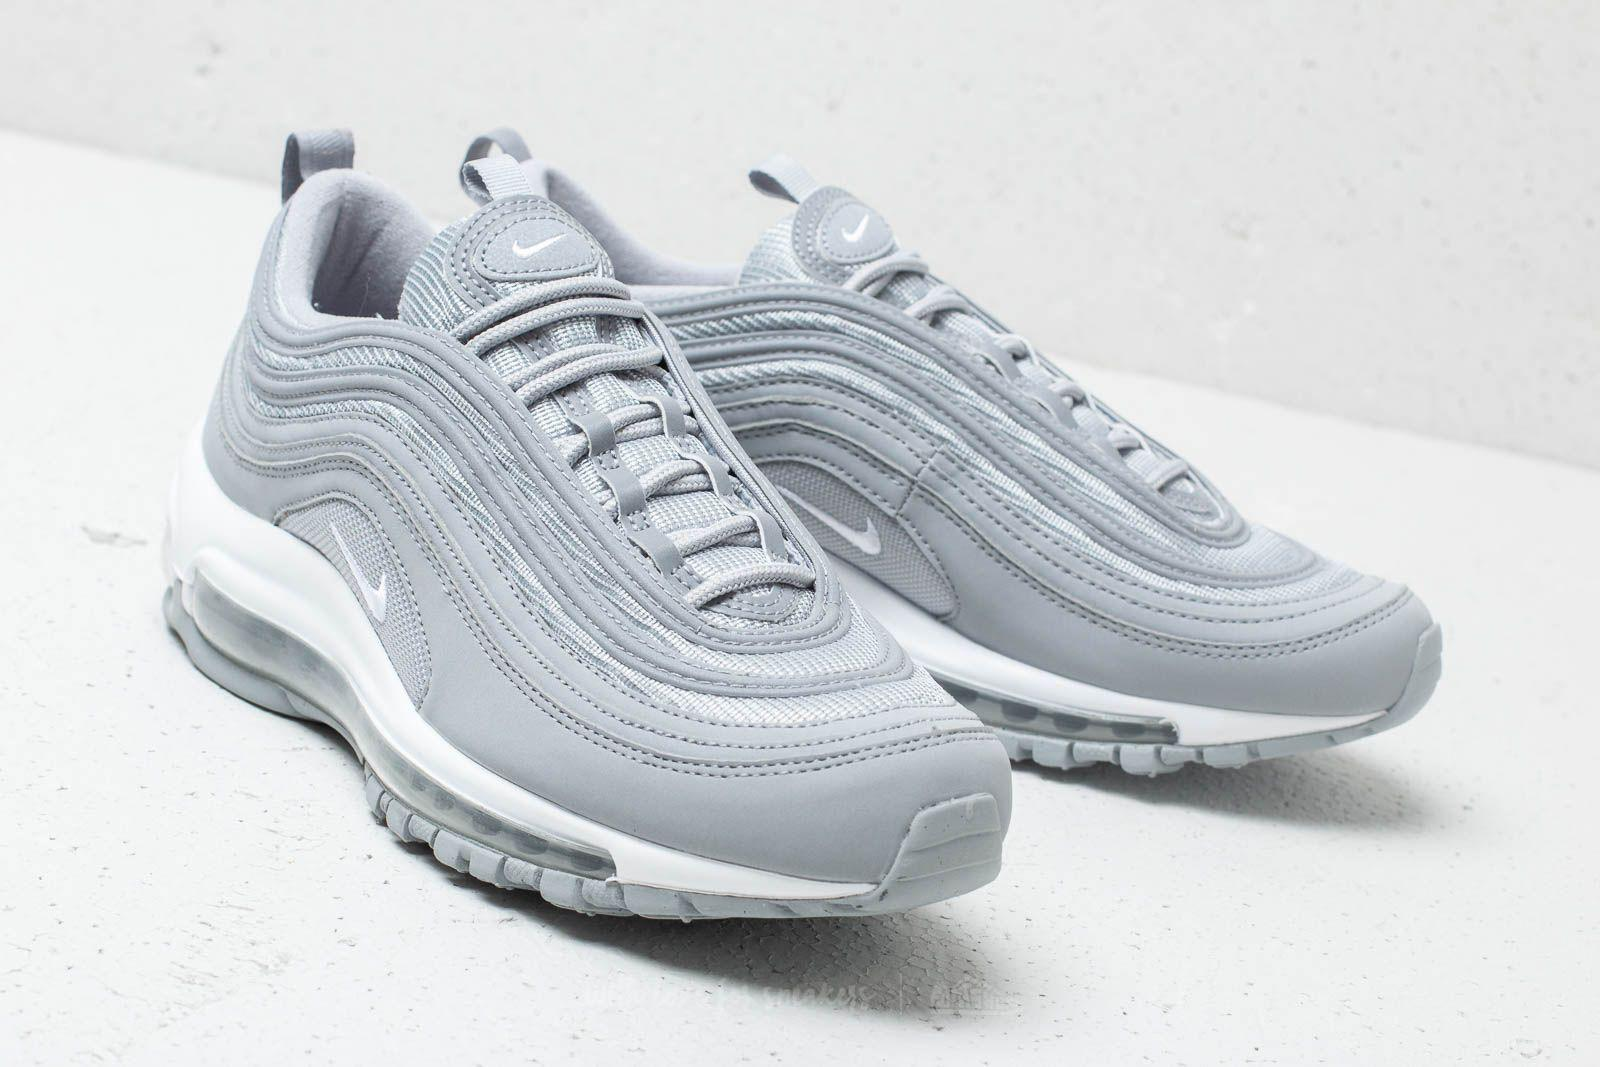 Men's Nike Air Max 97 All Star Jersey 921826 404 Game